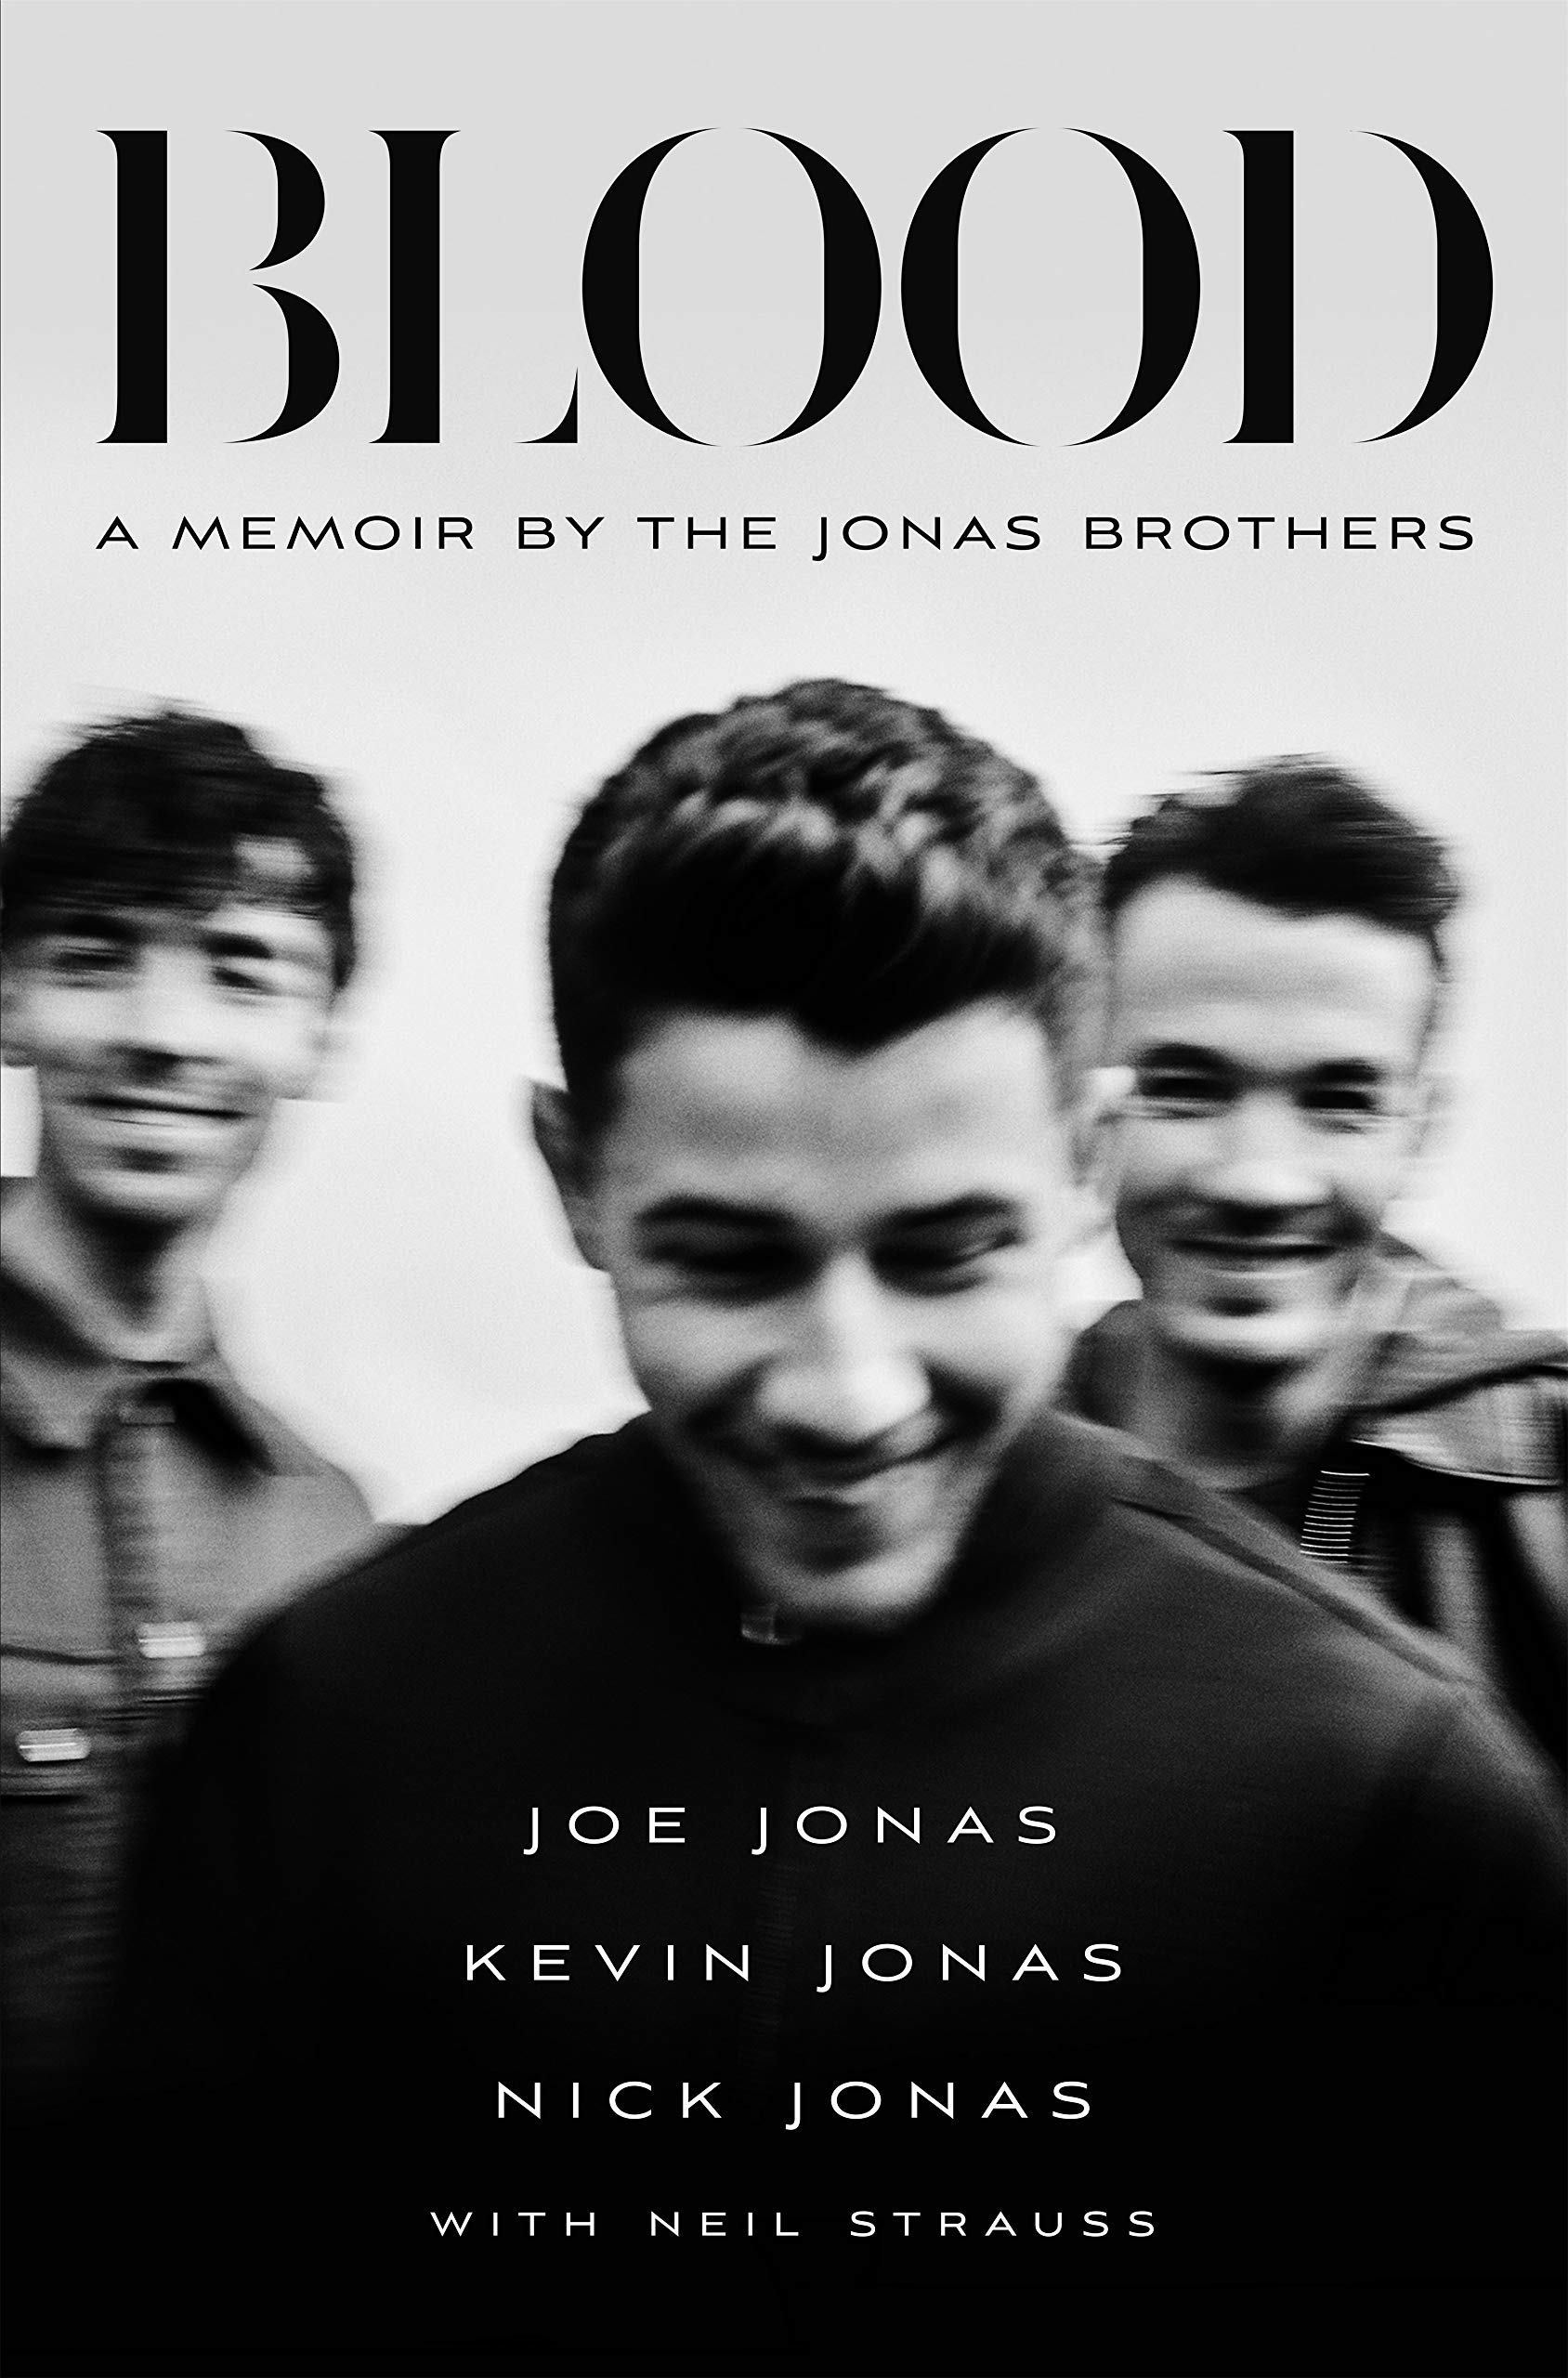 Blood: A Memoir by the Jonas Brothers by Feiwel & Friends